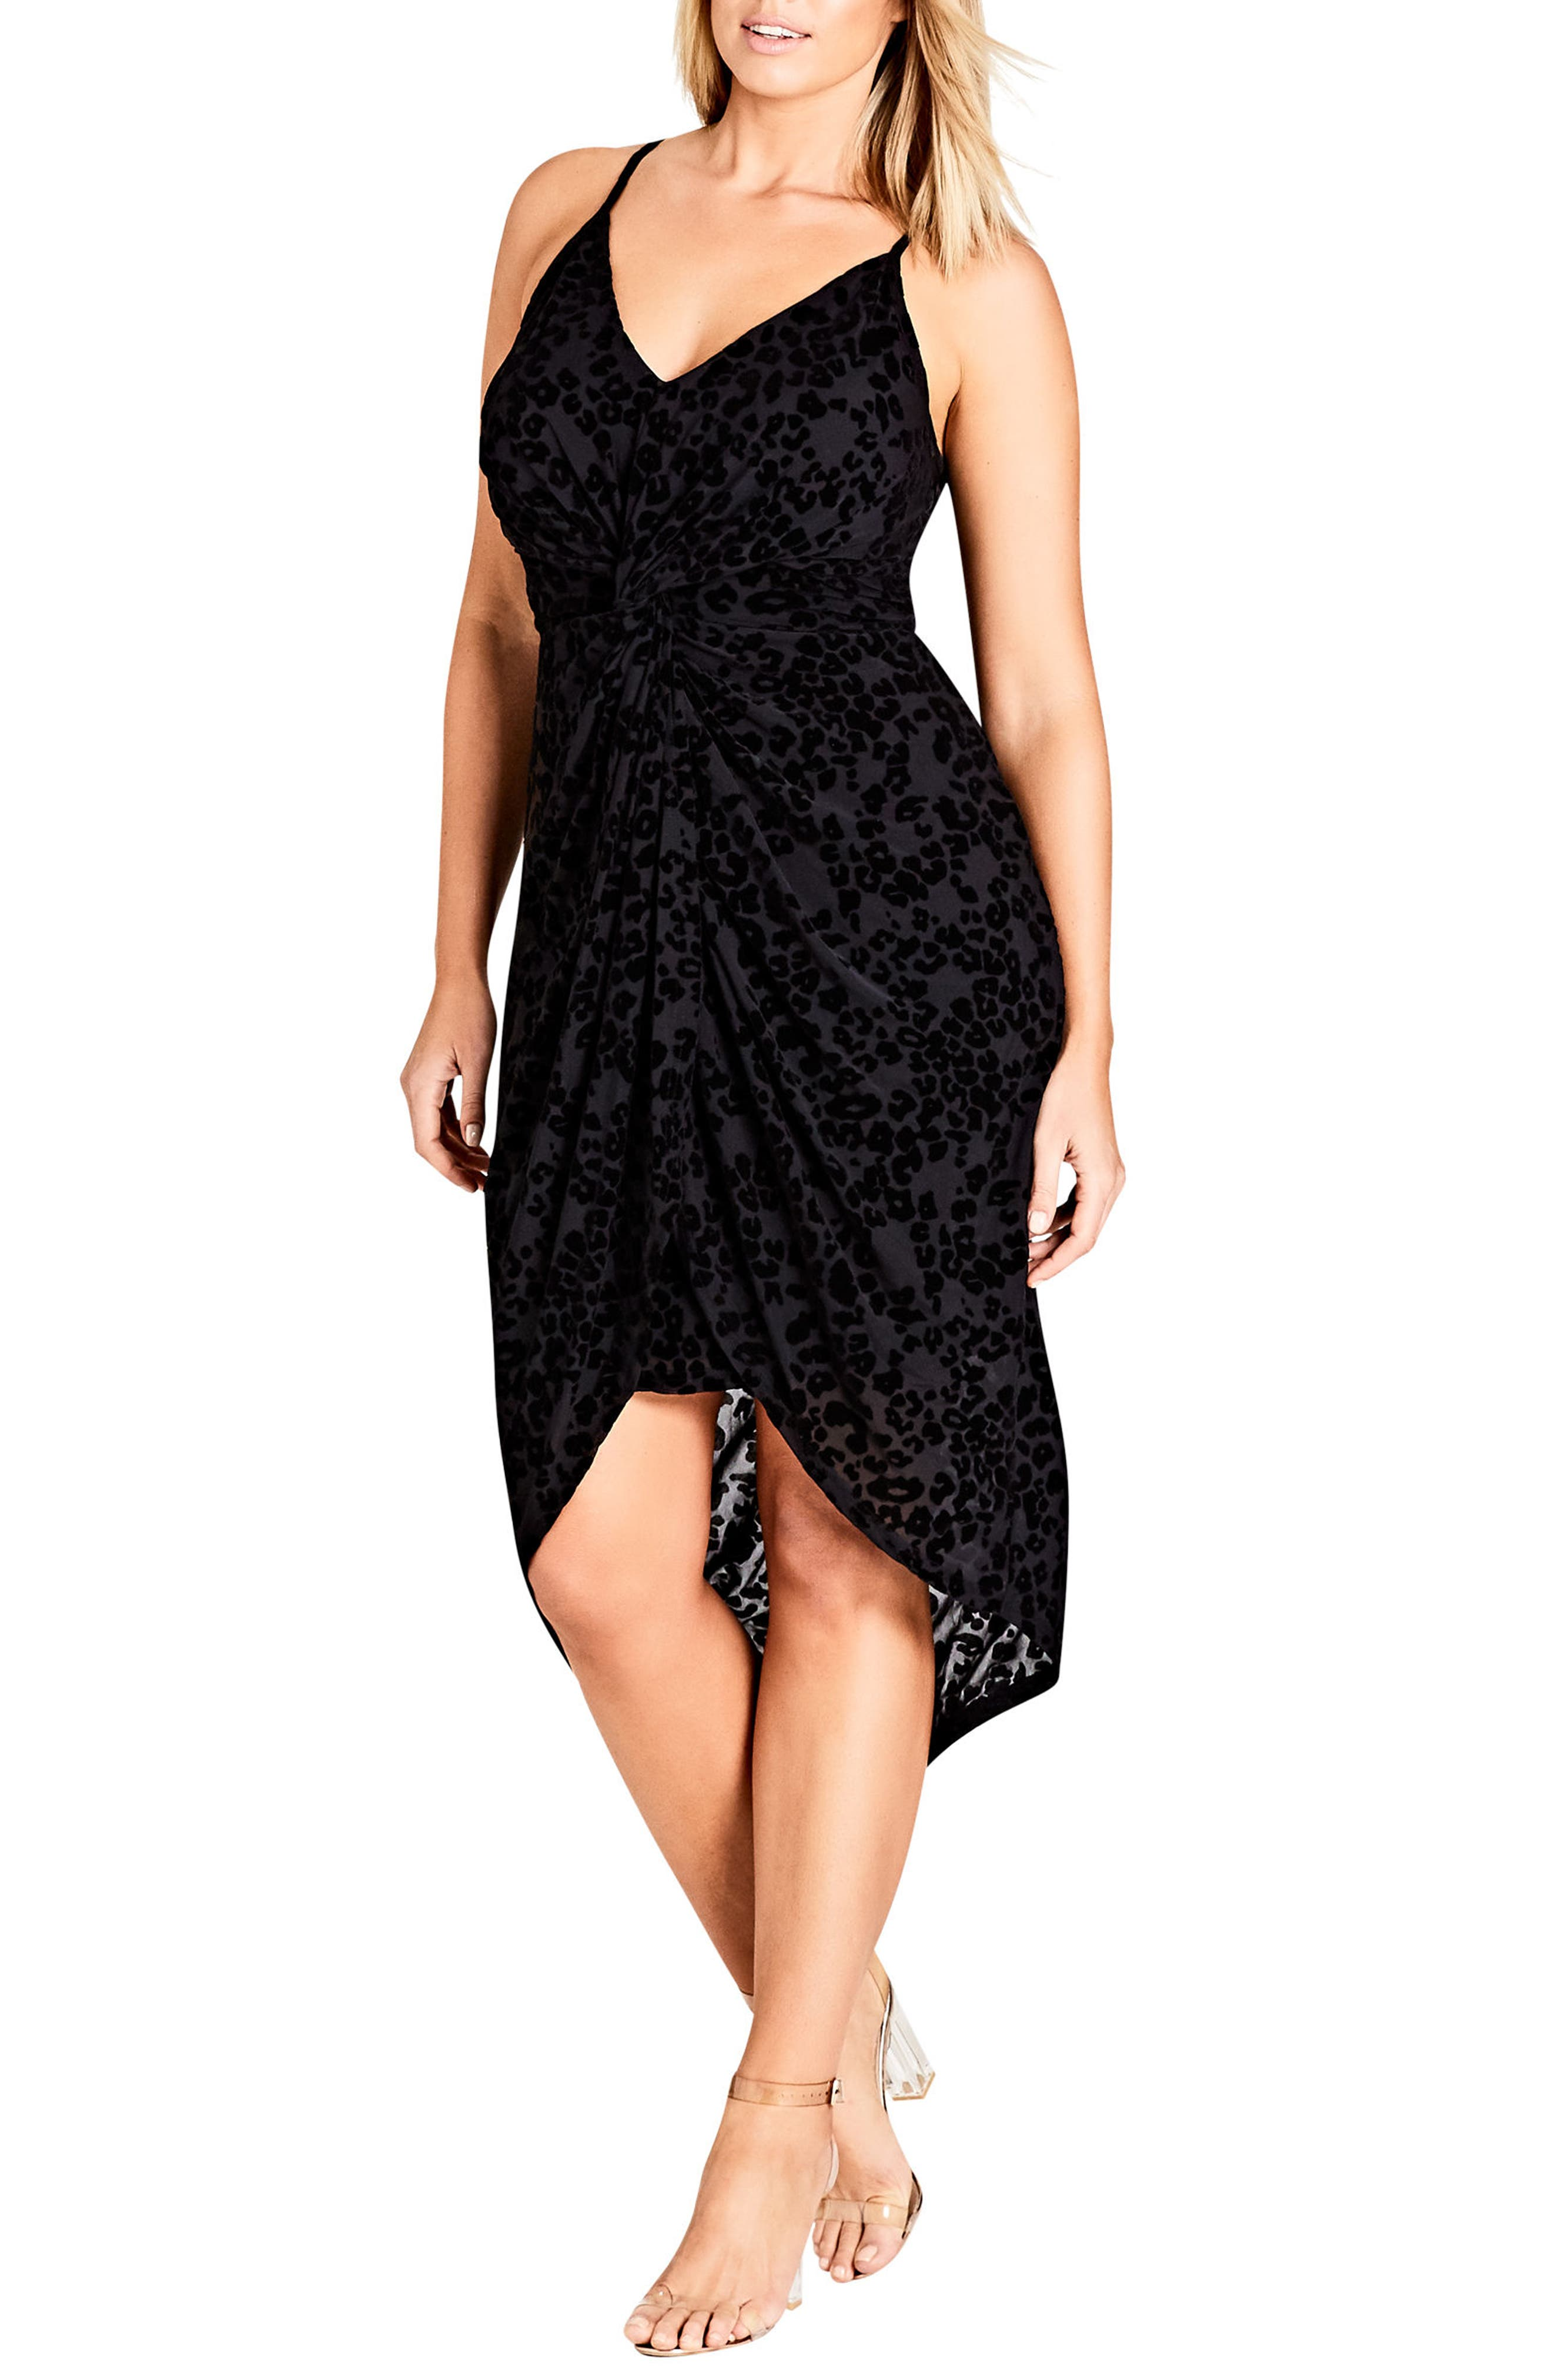 Mod Drape Dress,                         Main,                         color, Black